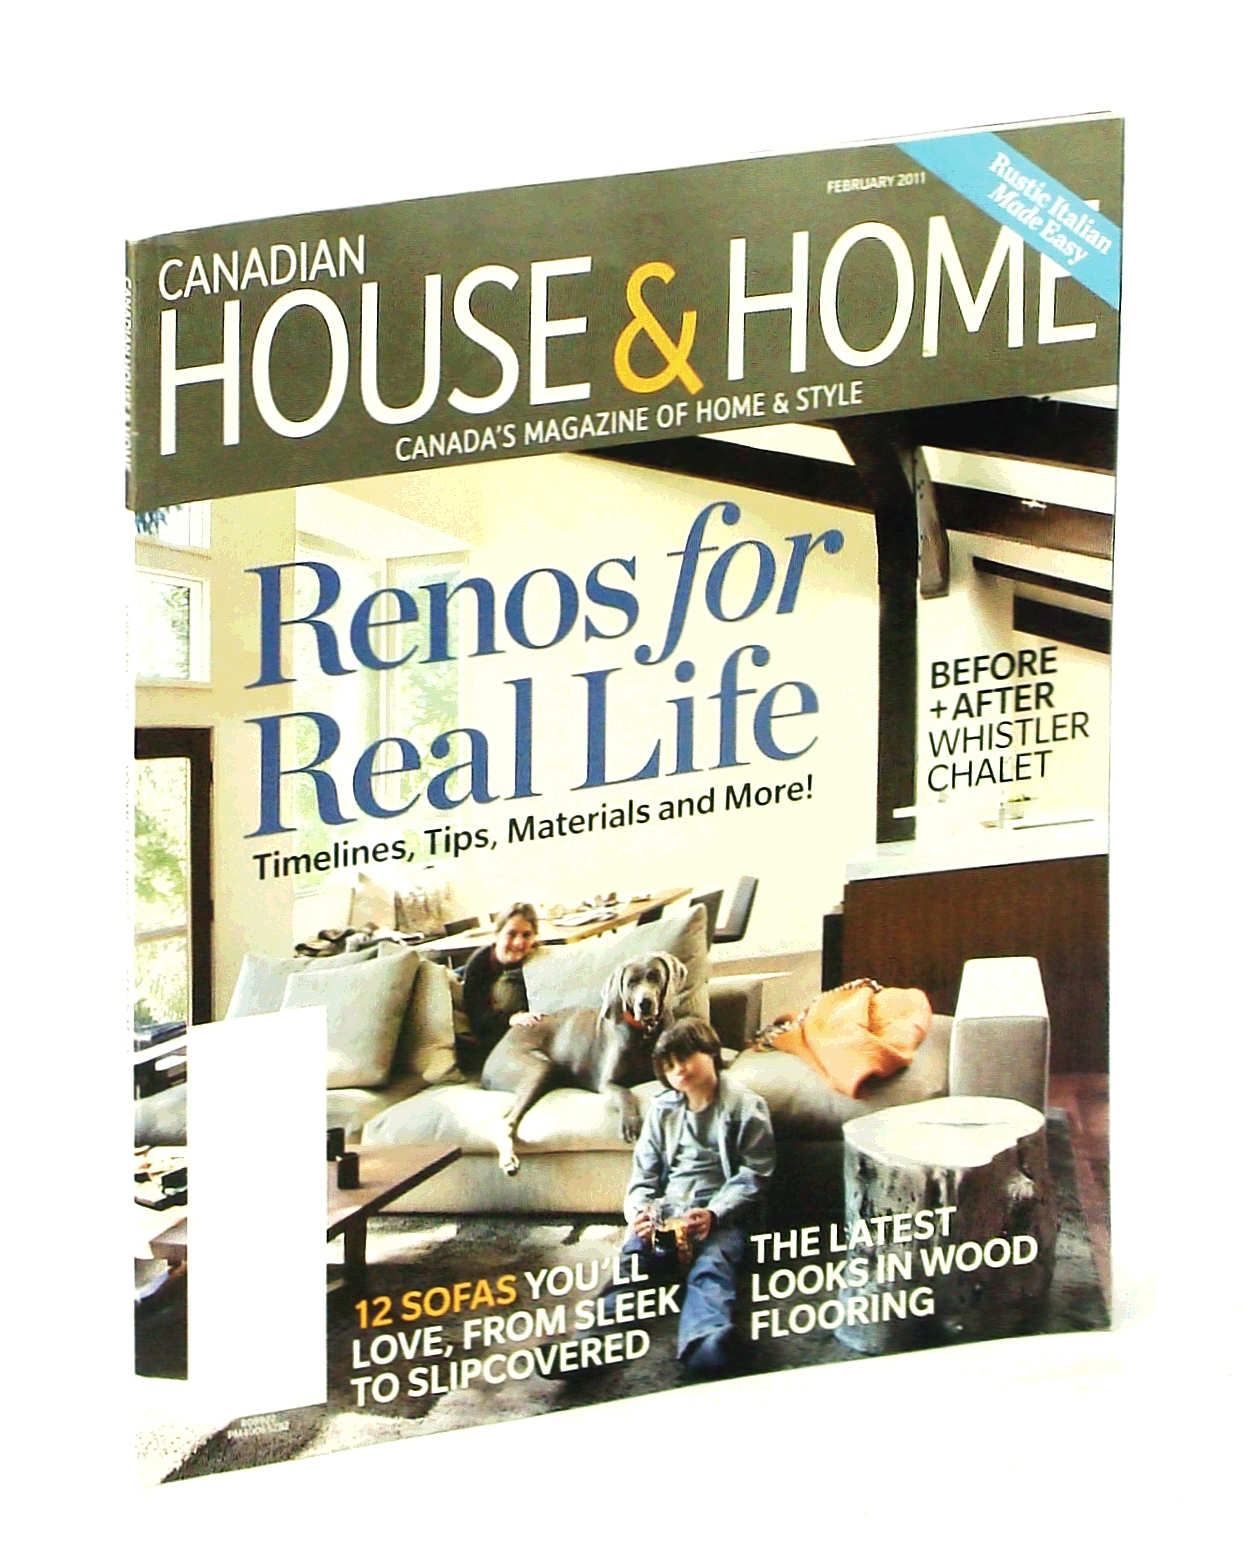 Image for Canadian House & Home - Canada's Magazine of Home & Style, February [Feb.] 2011: Renos For Real Life